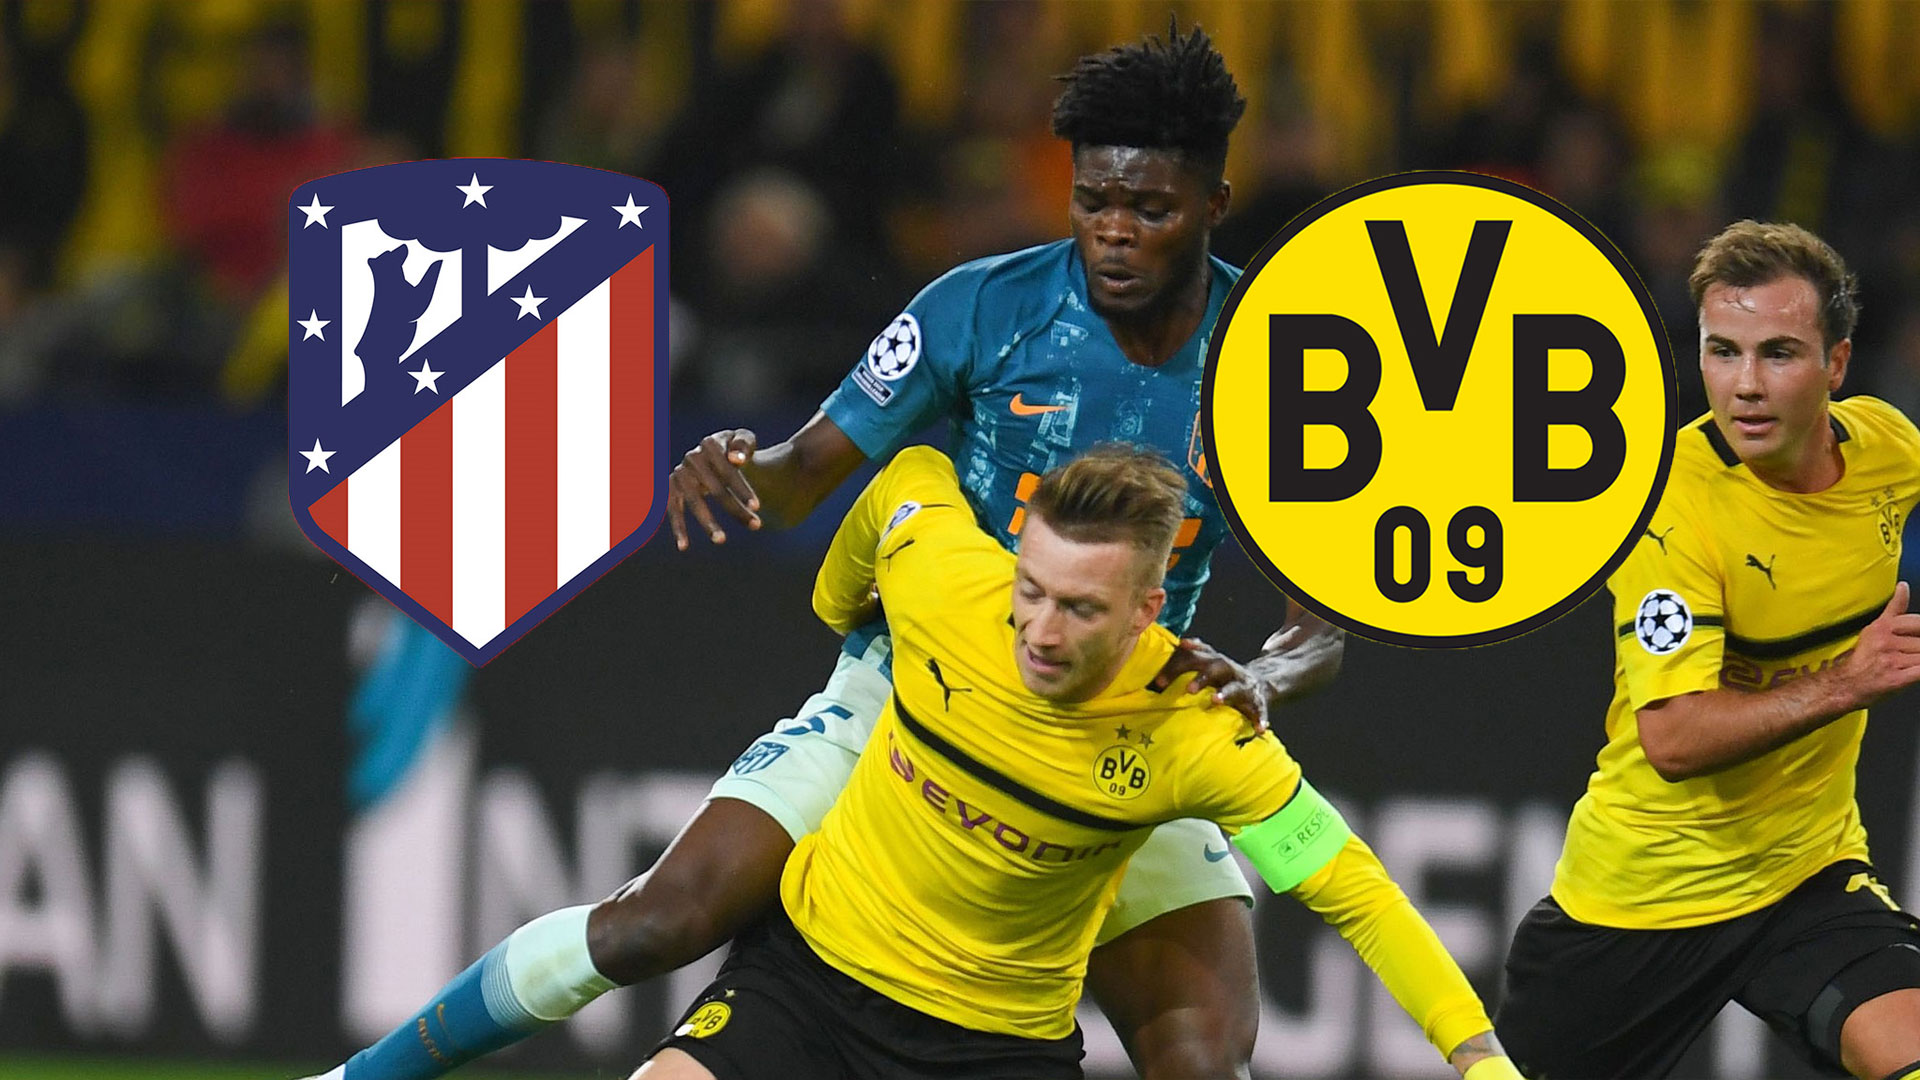 bvb real live stream kostenlos